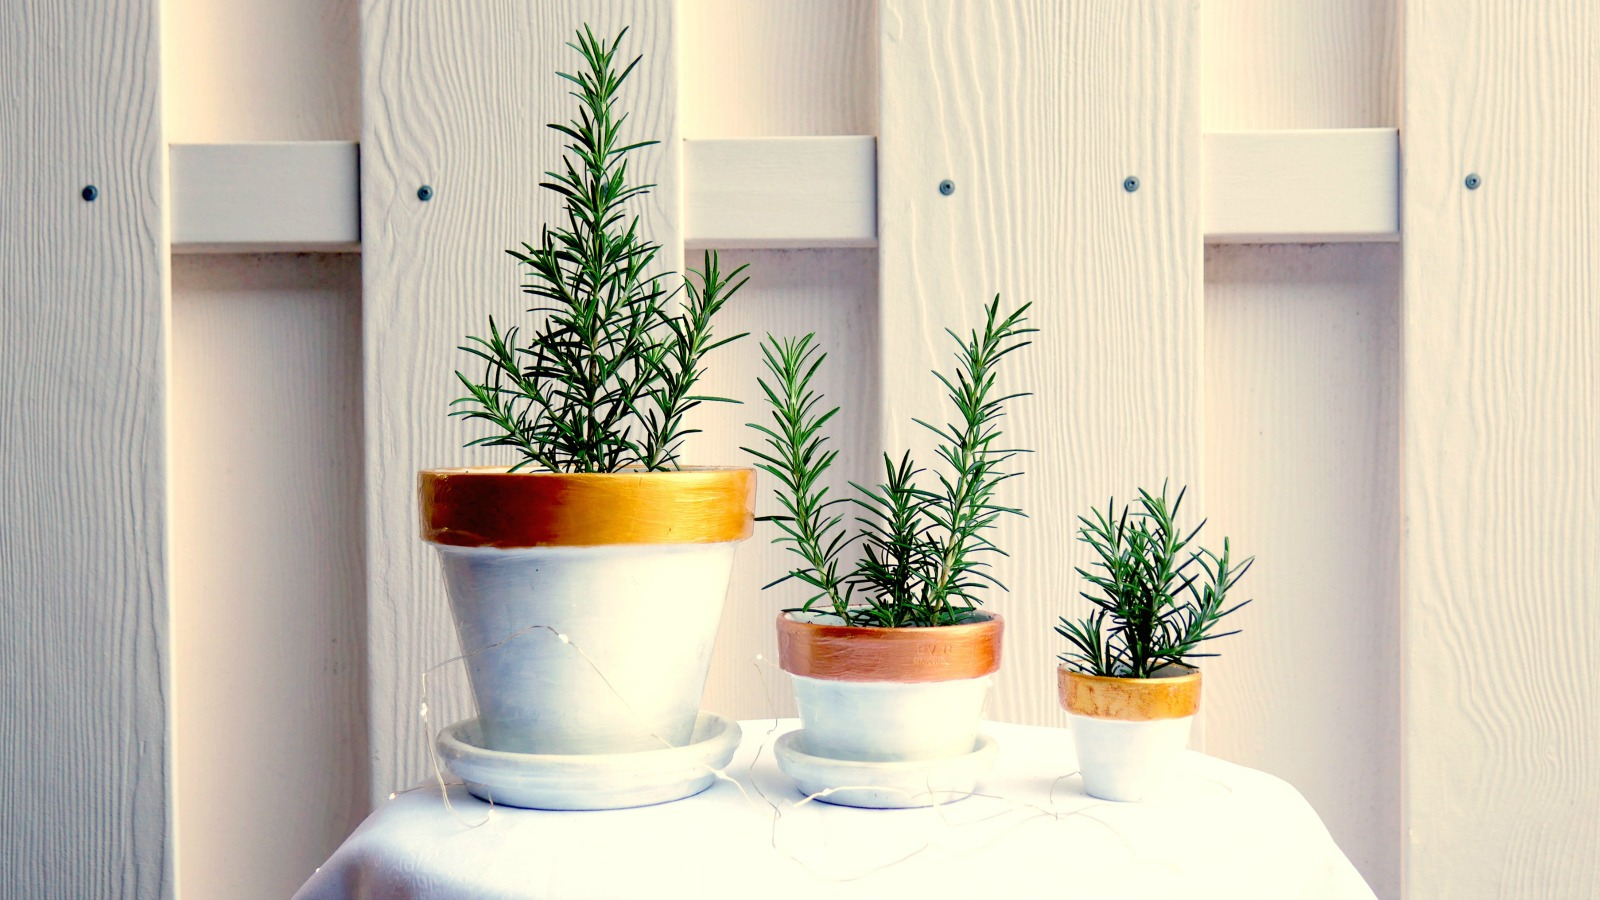 How to turn rosemary cuttings into a gift